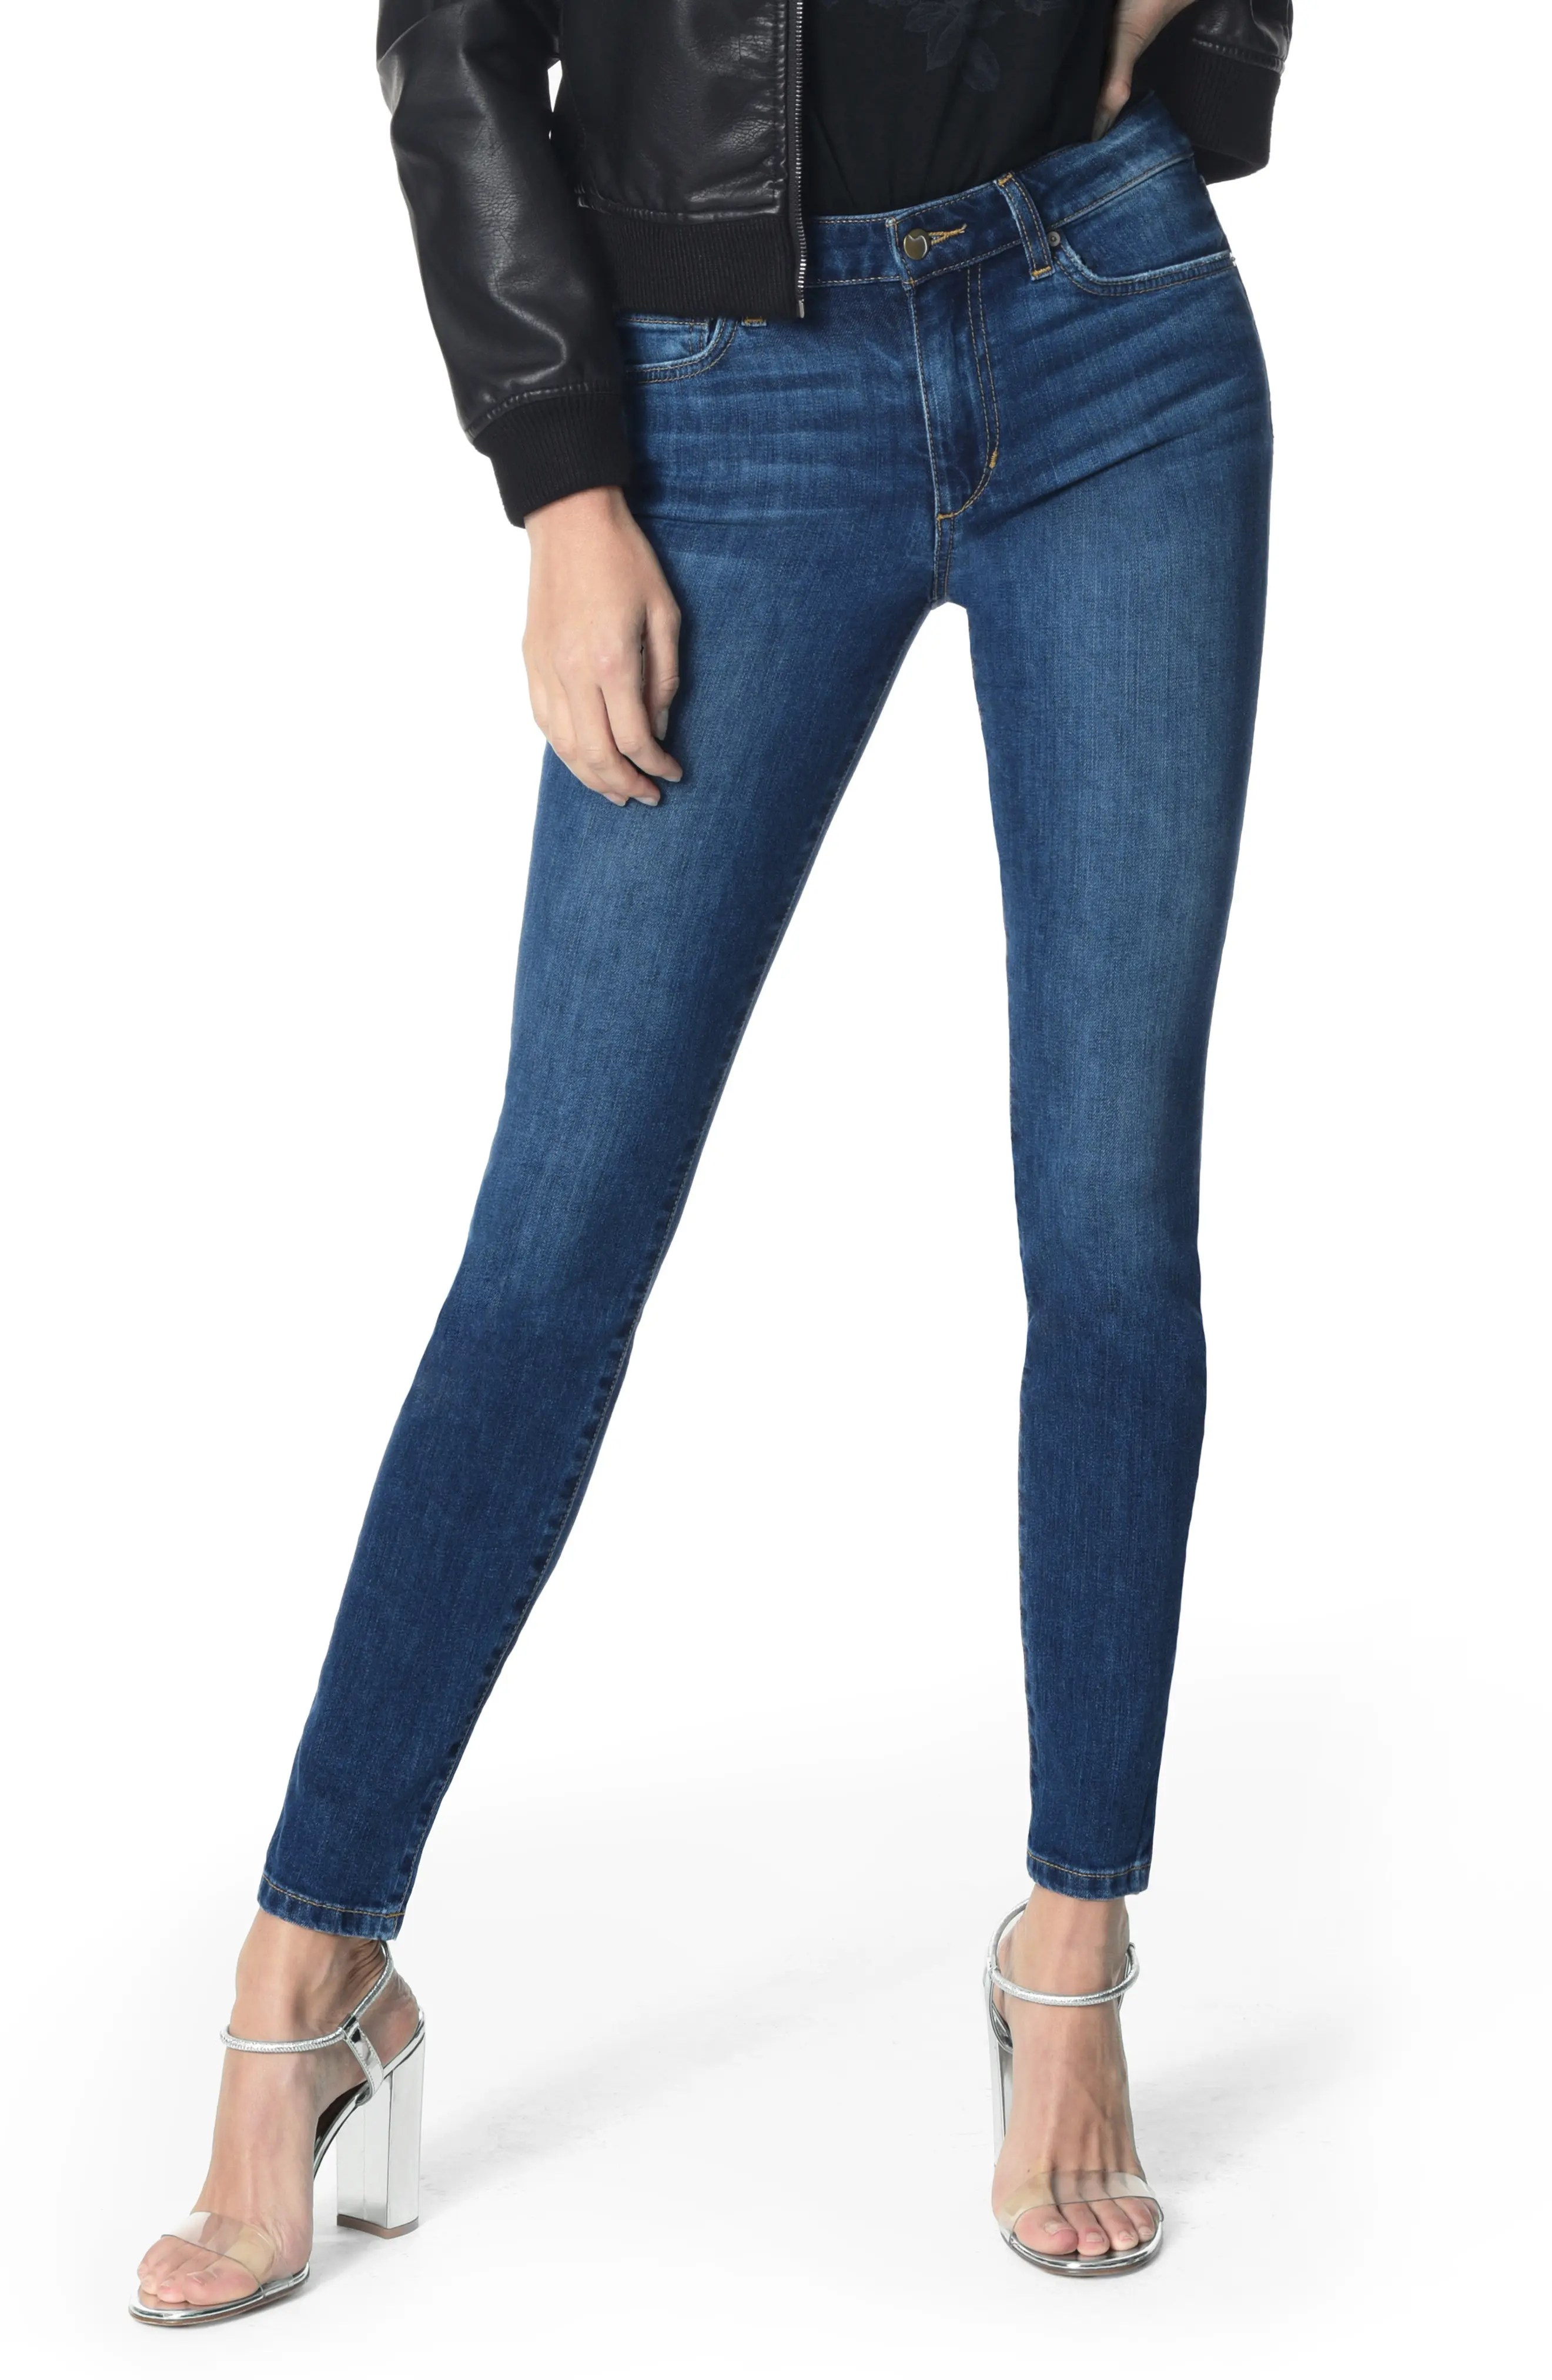 Joe   icon skinny jeans rochelle nordstrom exclusive also for women rh shoprdstrom